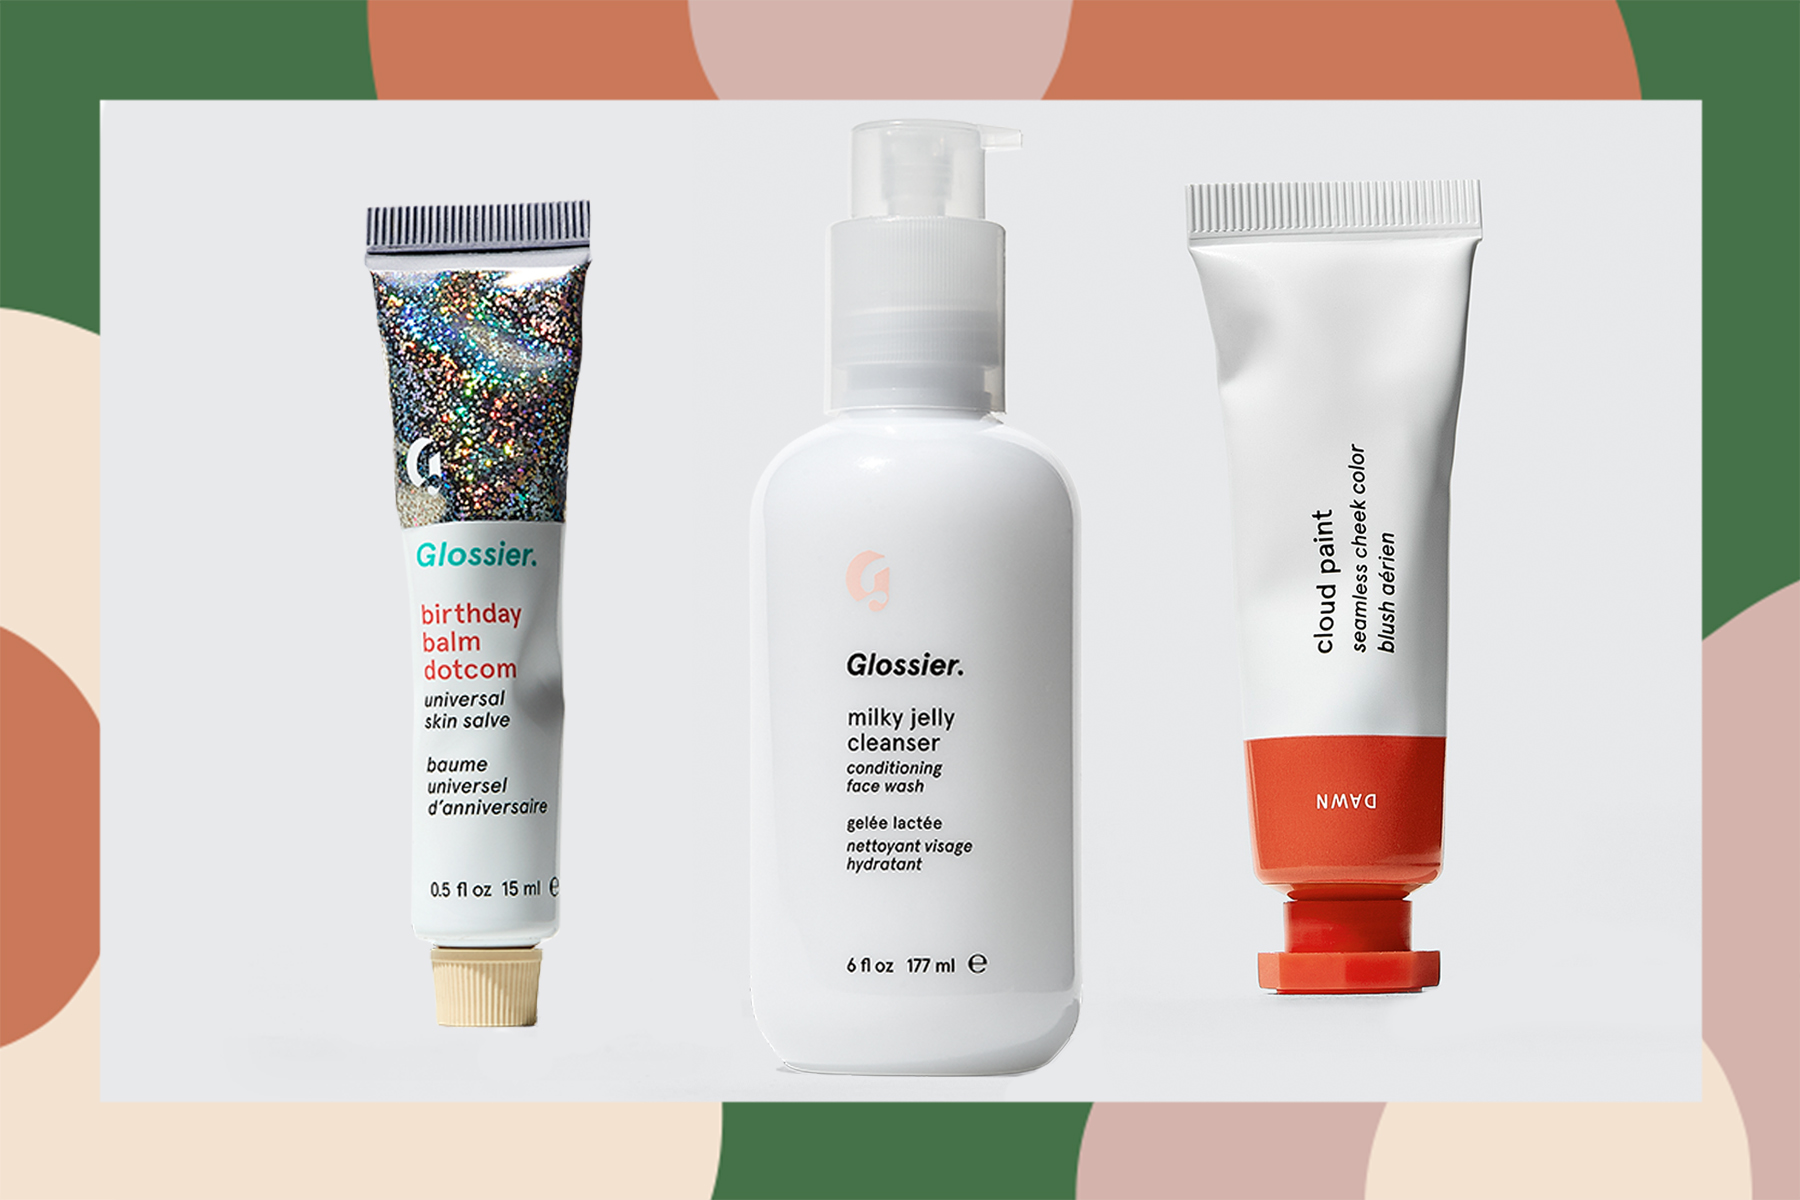 glossier black friday deals 2020